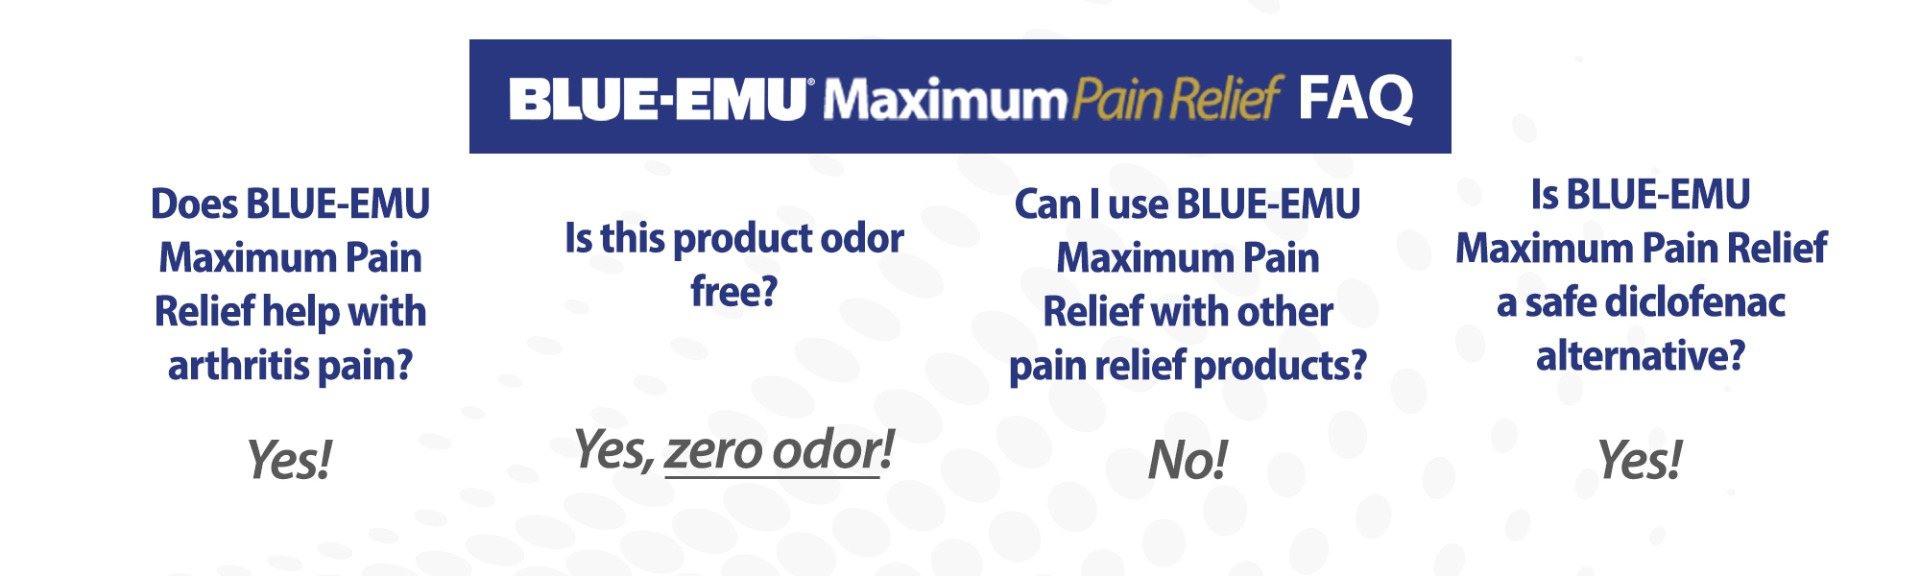 Image showing frequently asked questions for Blue-Emu Maximum Pain Relief Cream - Does it treat arthritis? Yes. Is it odor free? Yes, zero odor! Can I use Blue-Emu Maximum Pain Relief with other pain relief products? No. Is Blue-Emu Maximum Pain Relief a safe diclofenac alternative? Yes